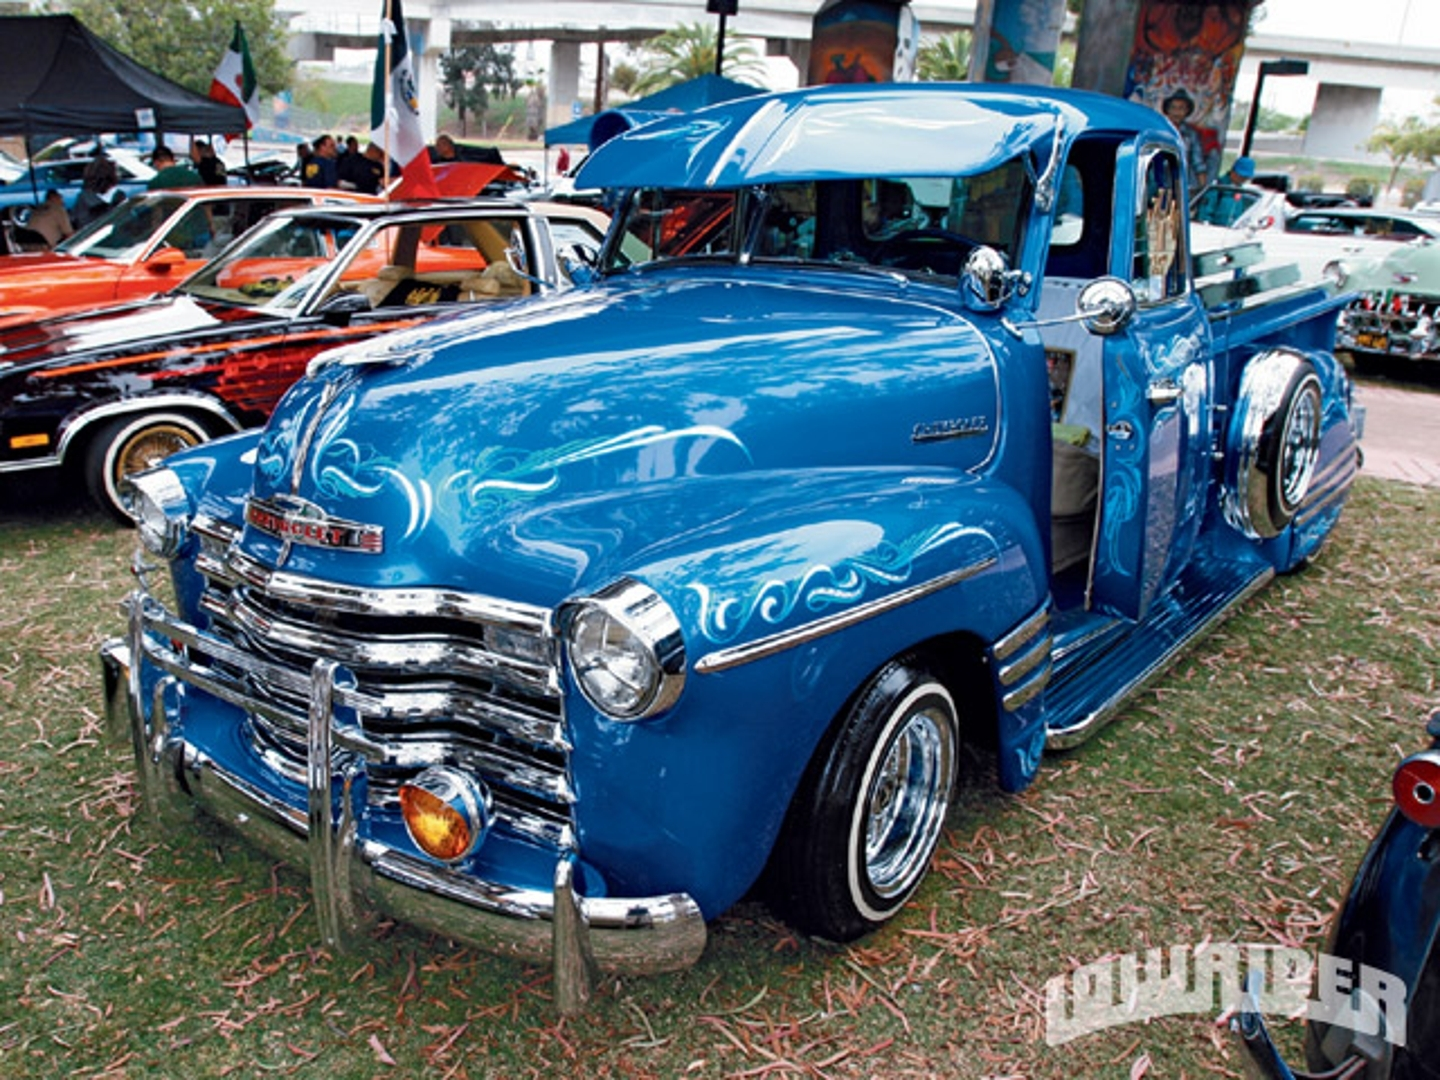 Lowrider Car Wallpaper in addition Chevrolet Impala 1 also 506924 in addition Low Riderranflas Y Trocas Cholas as well Wallpaper 0853. on old but cool cars low riders